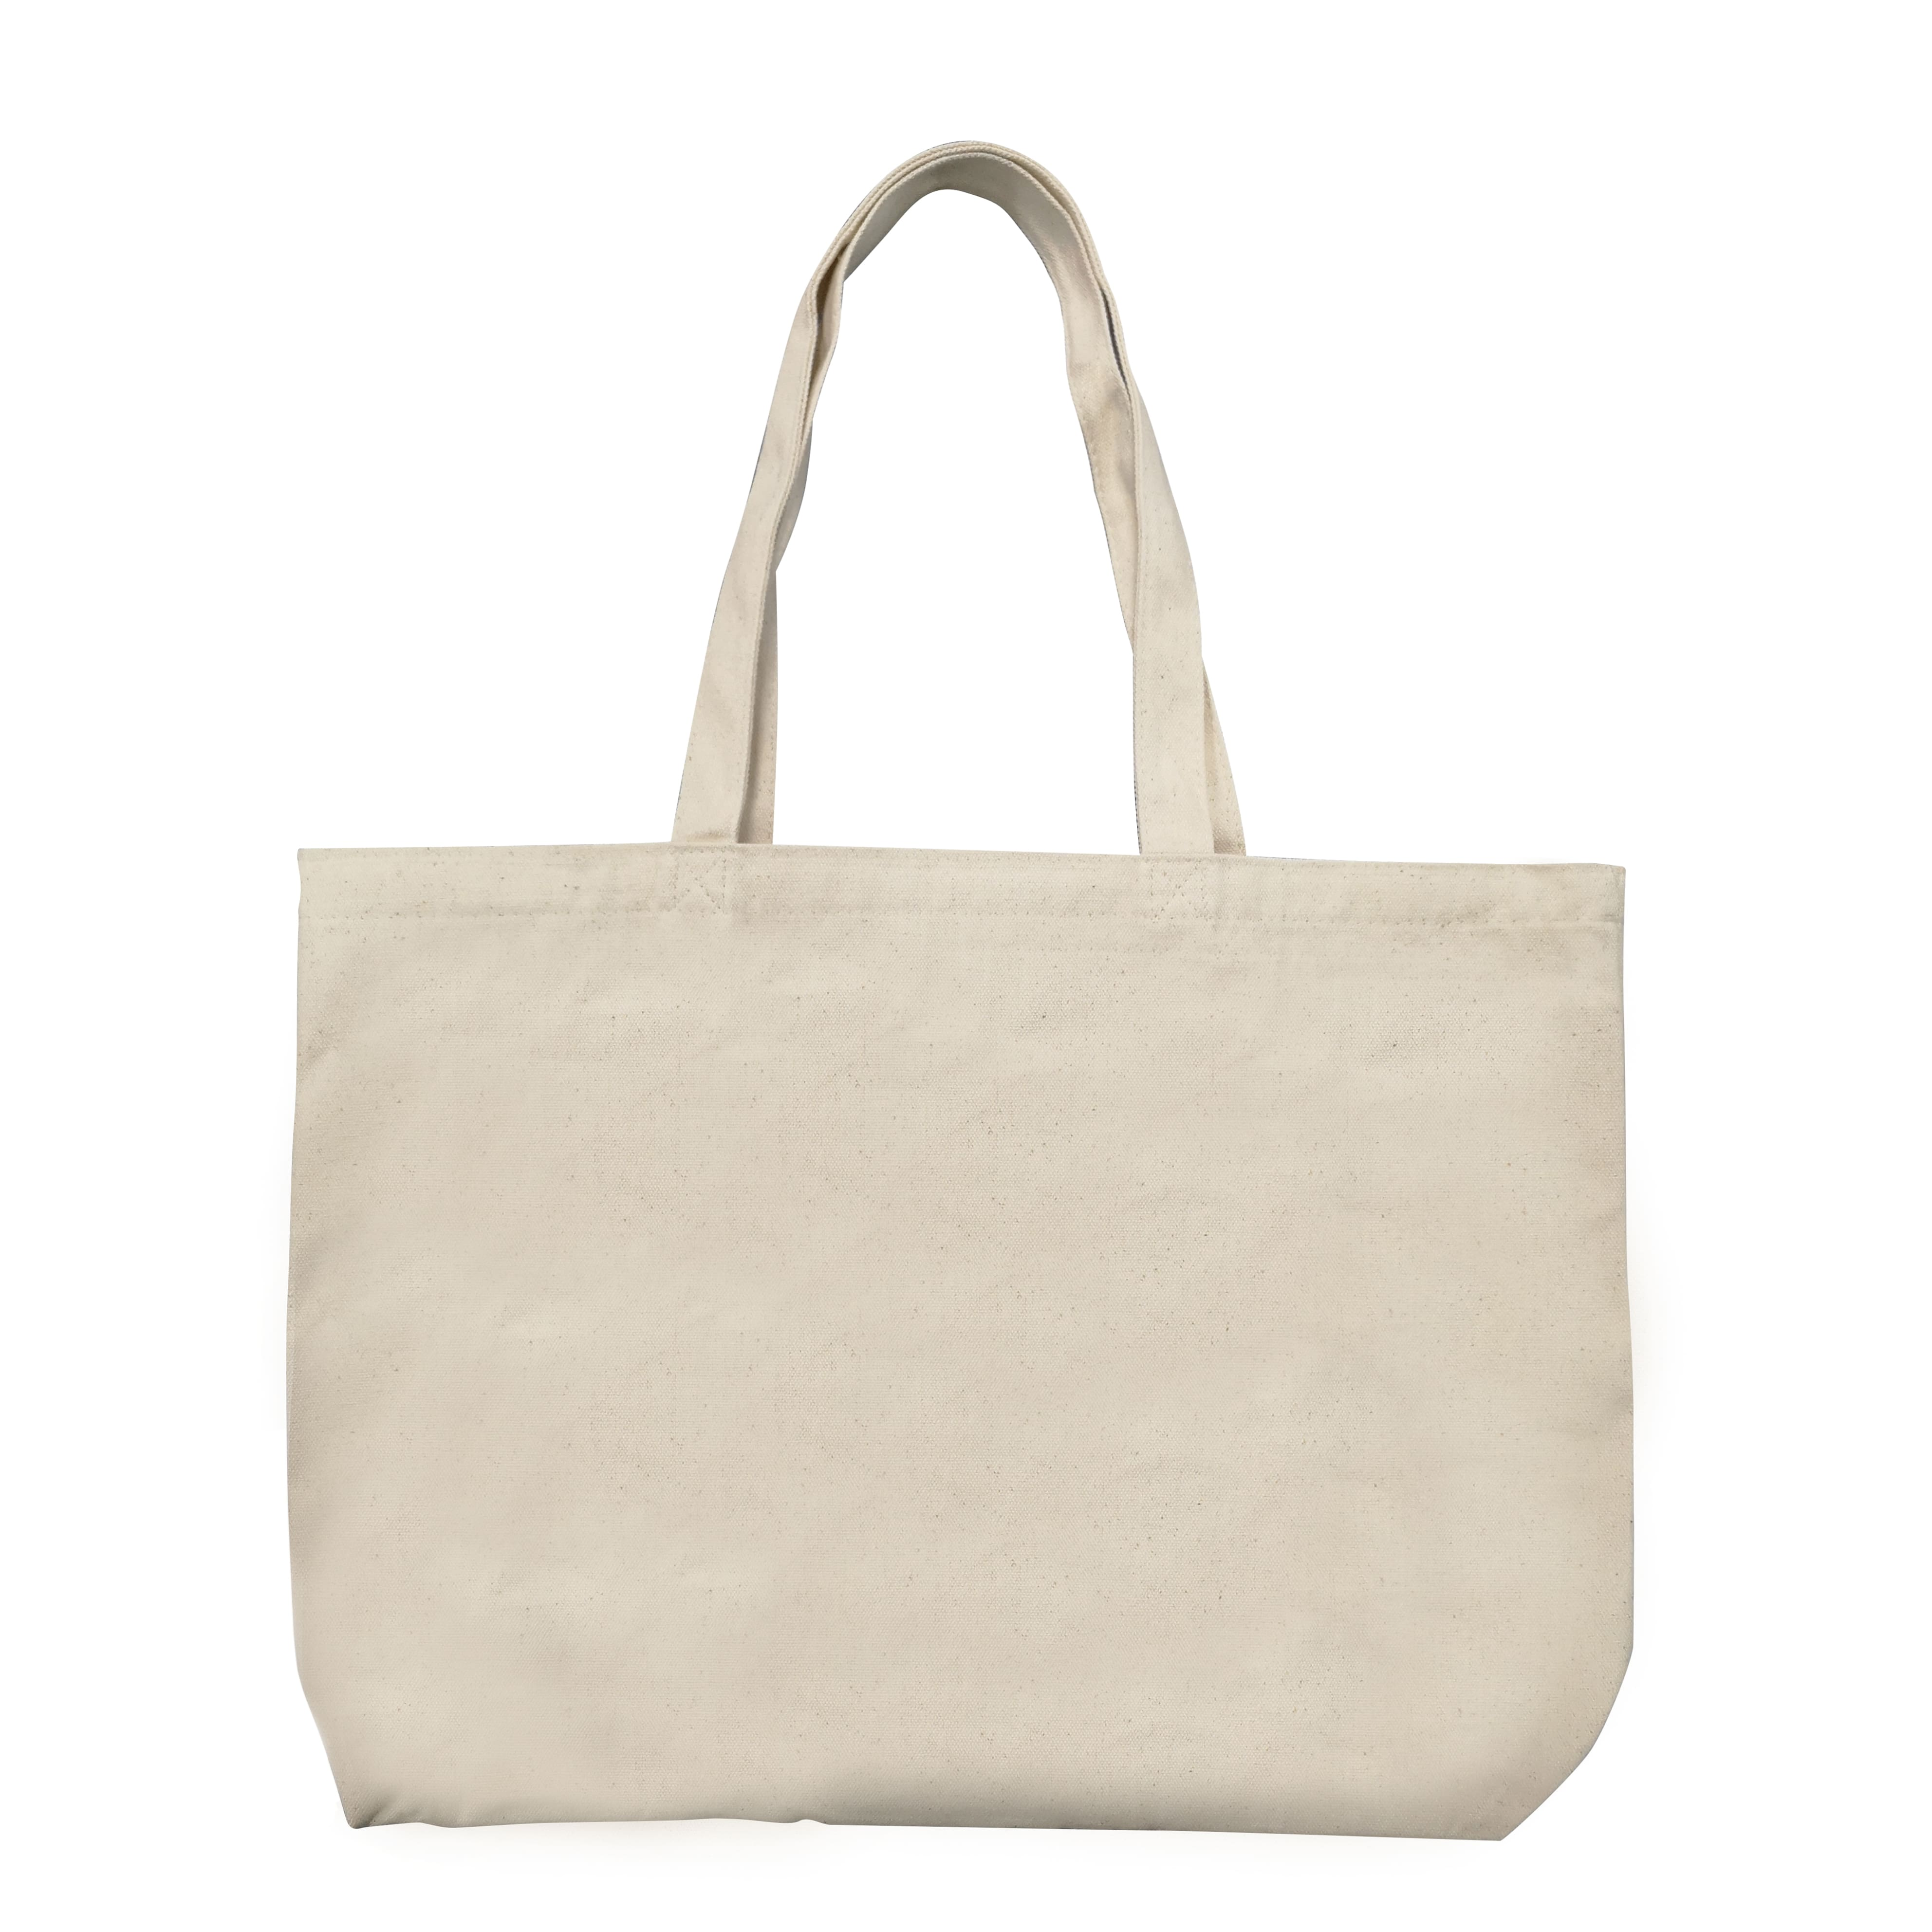 Find The Canvas Tote Bag By Imagin8 At Michaels